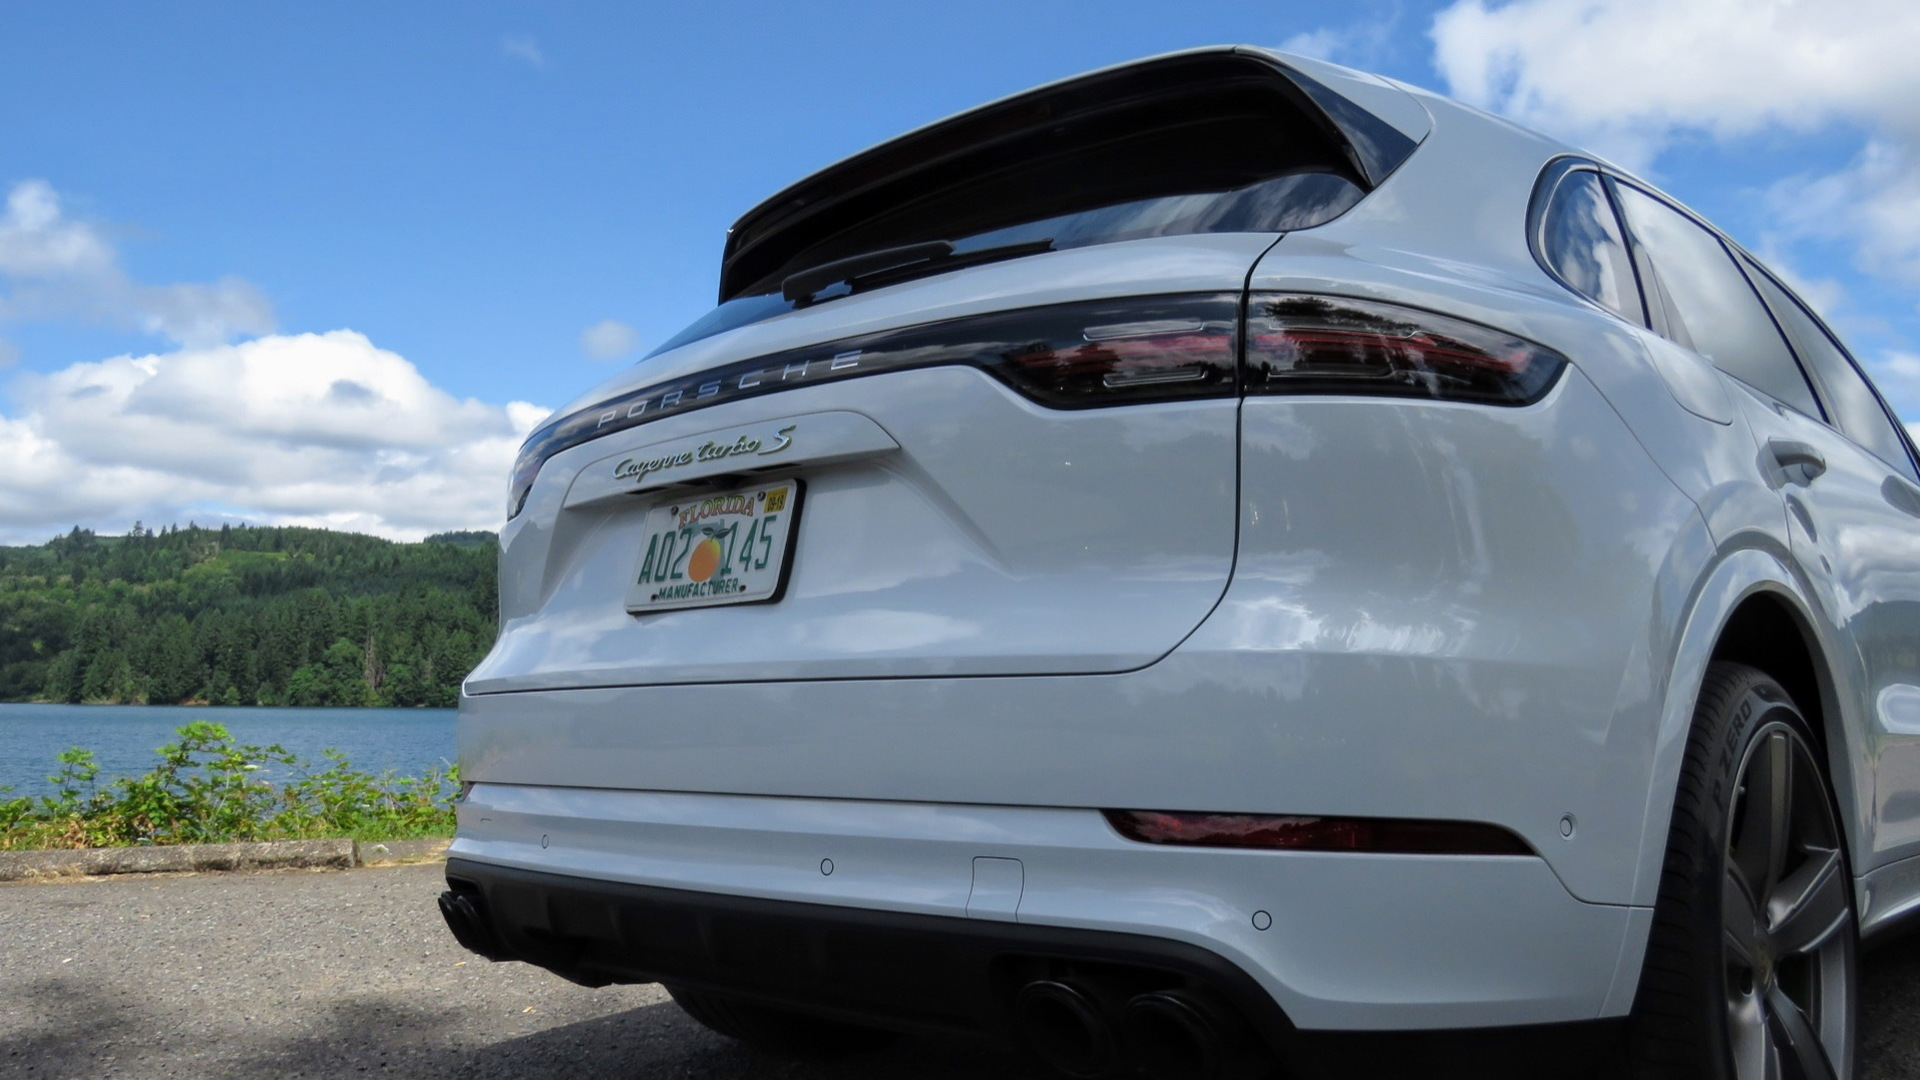 2020 Porsche Cayenne Turbo S E-Hybrid  -  preview drive